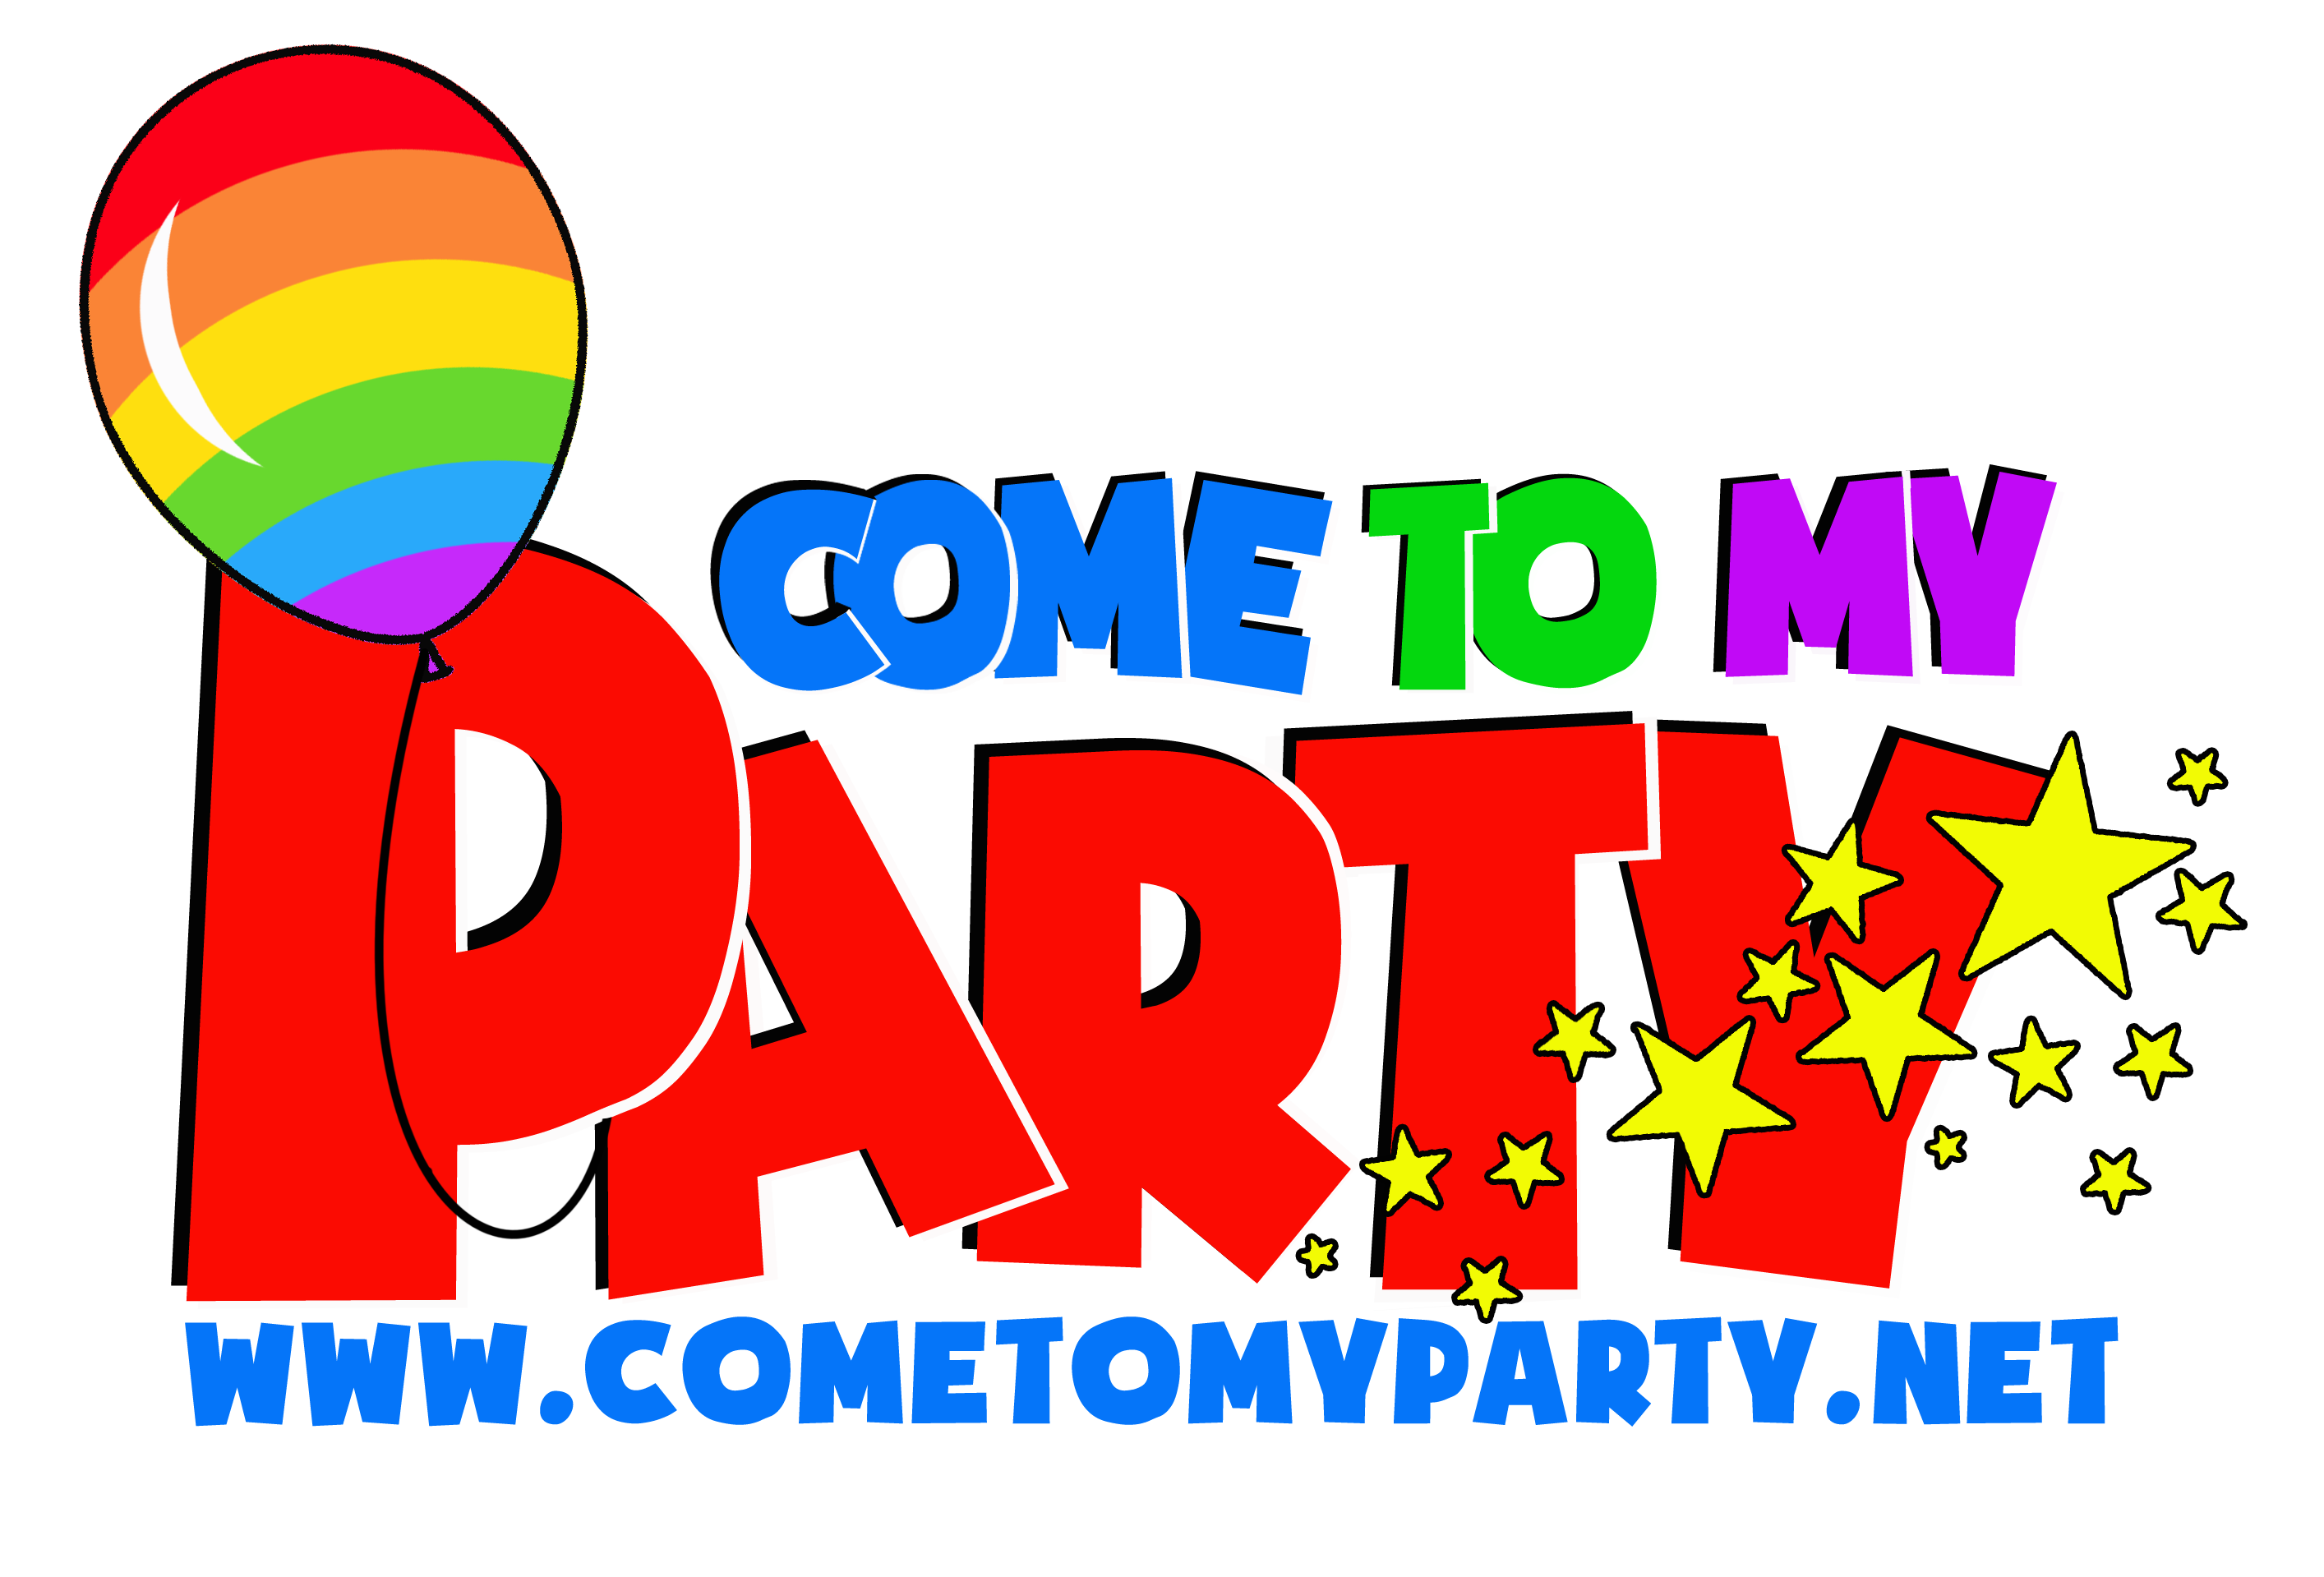 Come To My Party's logo